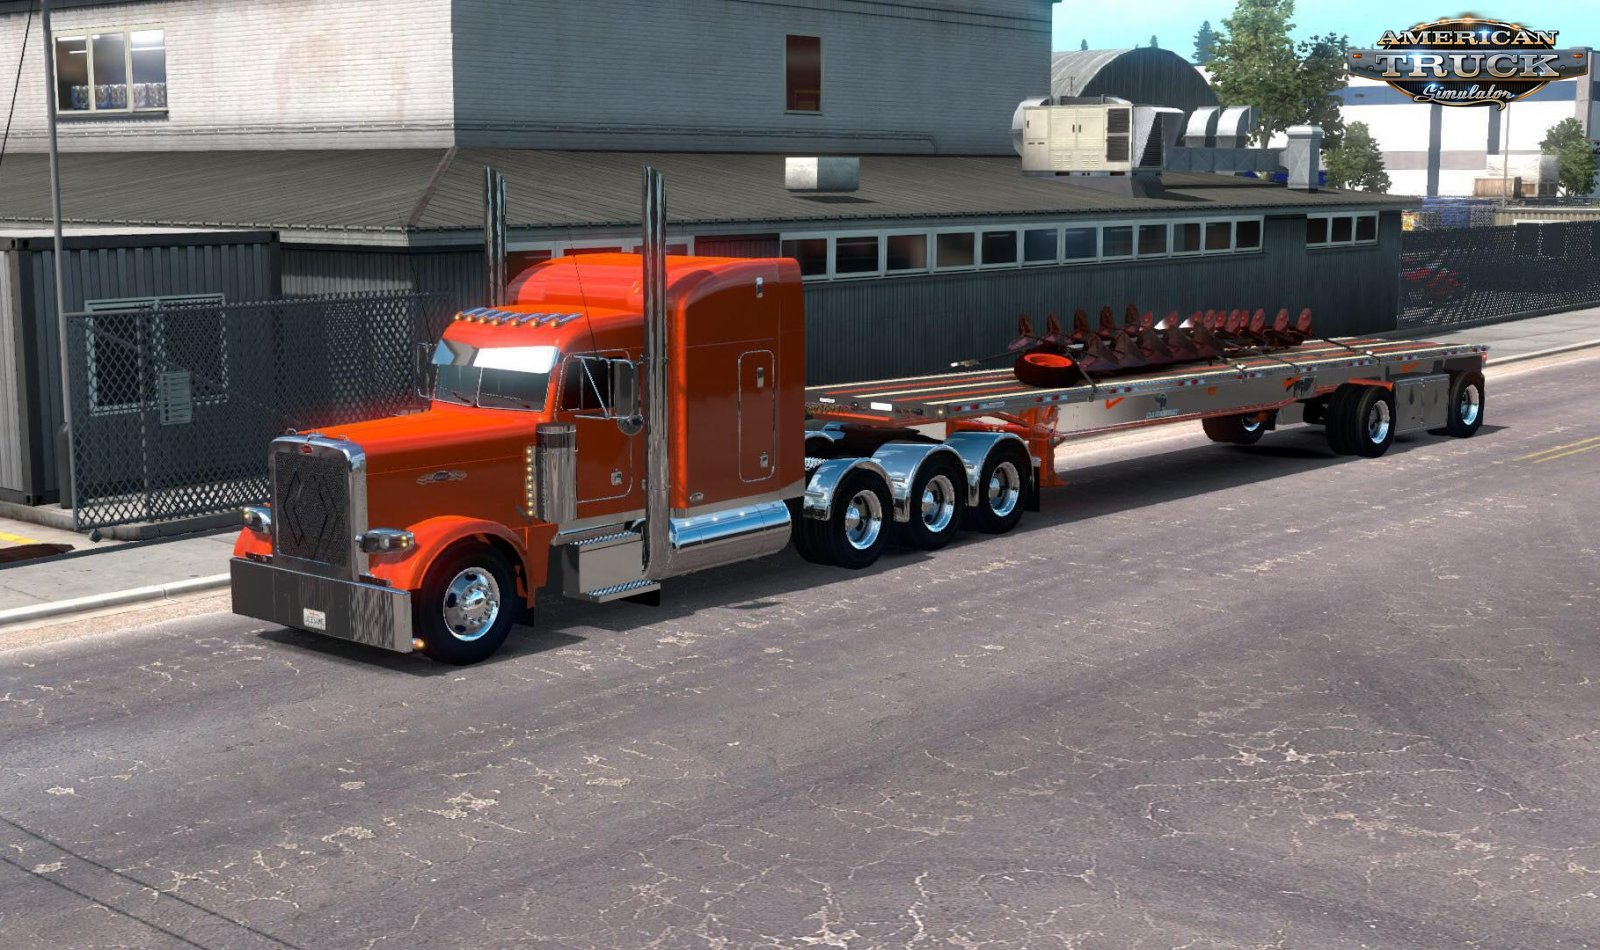 Trailer Corbys Manac Darkwing v1.1 (1.35.x)